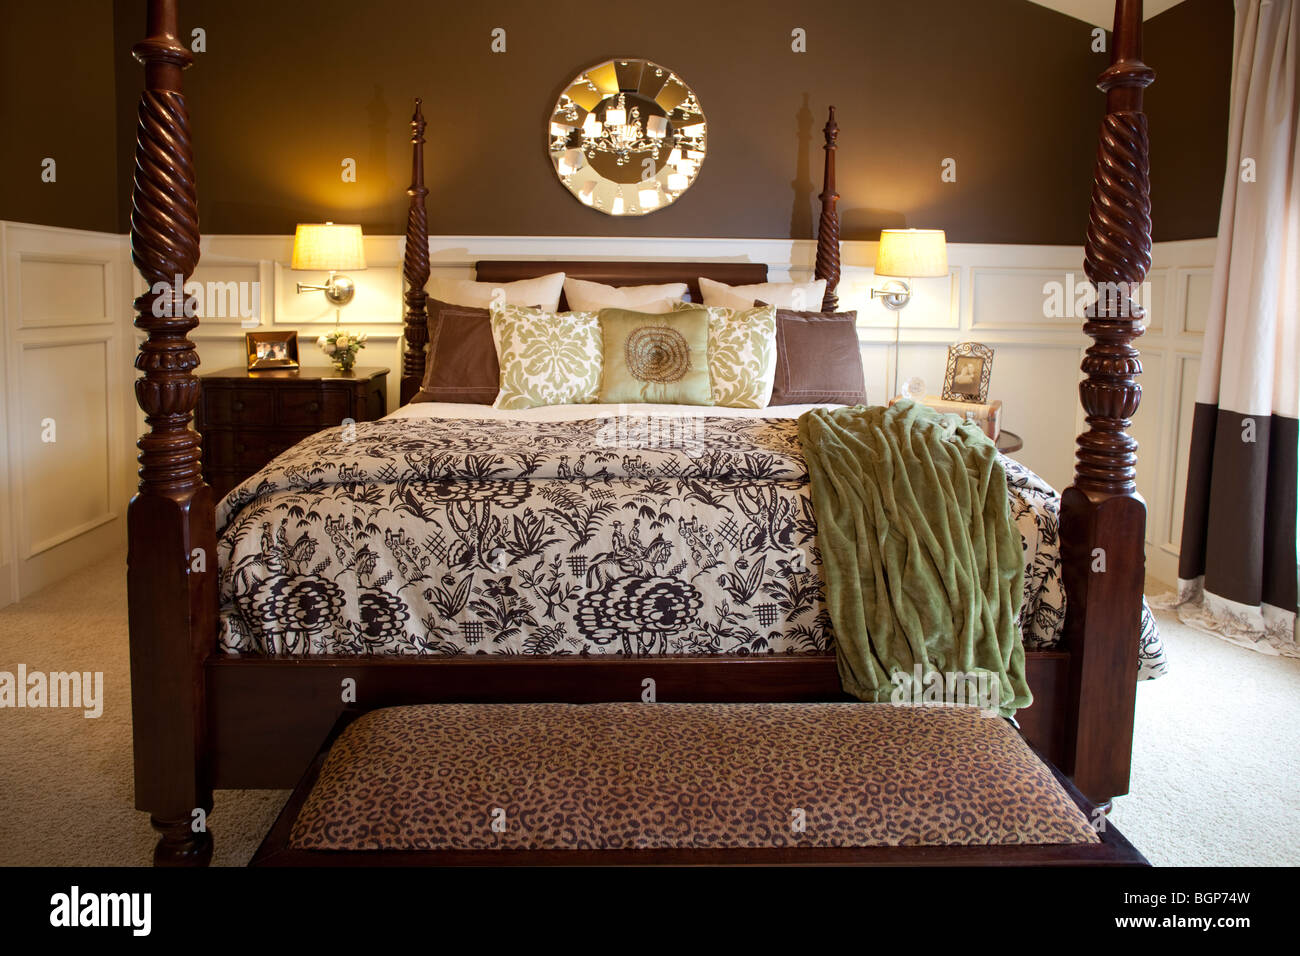 21787473fef95 Four poster king size double bed in master bedroom furnished in warm  elegant colors. American